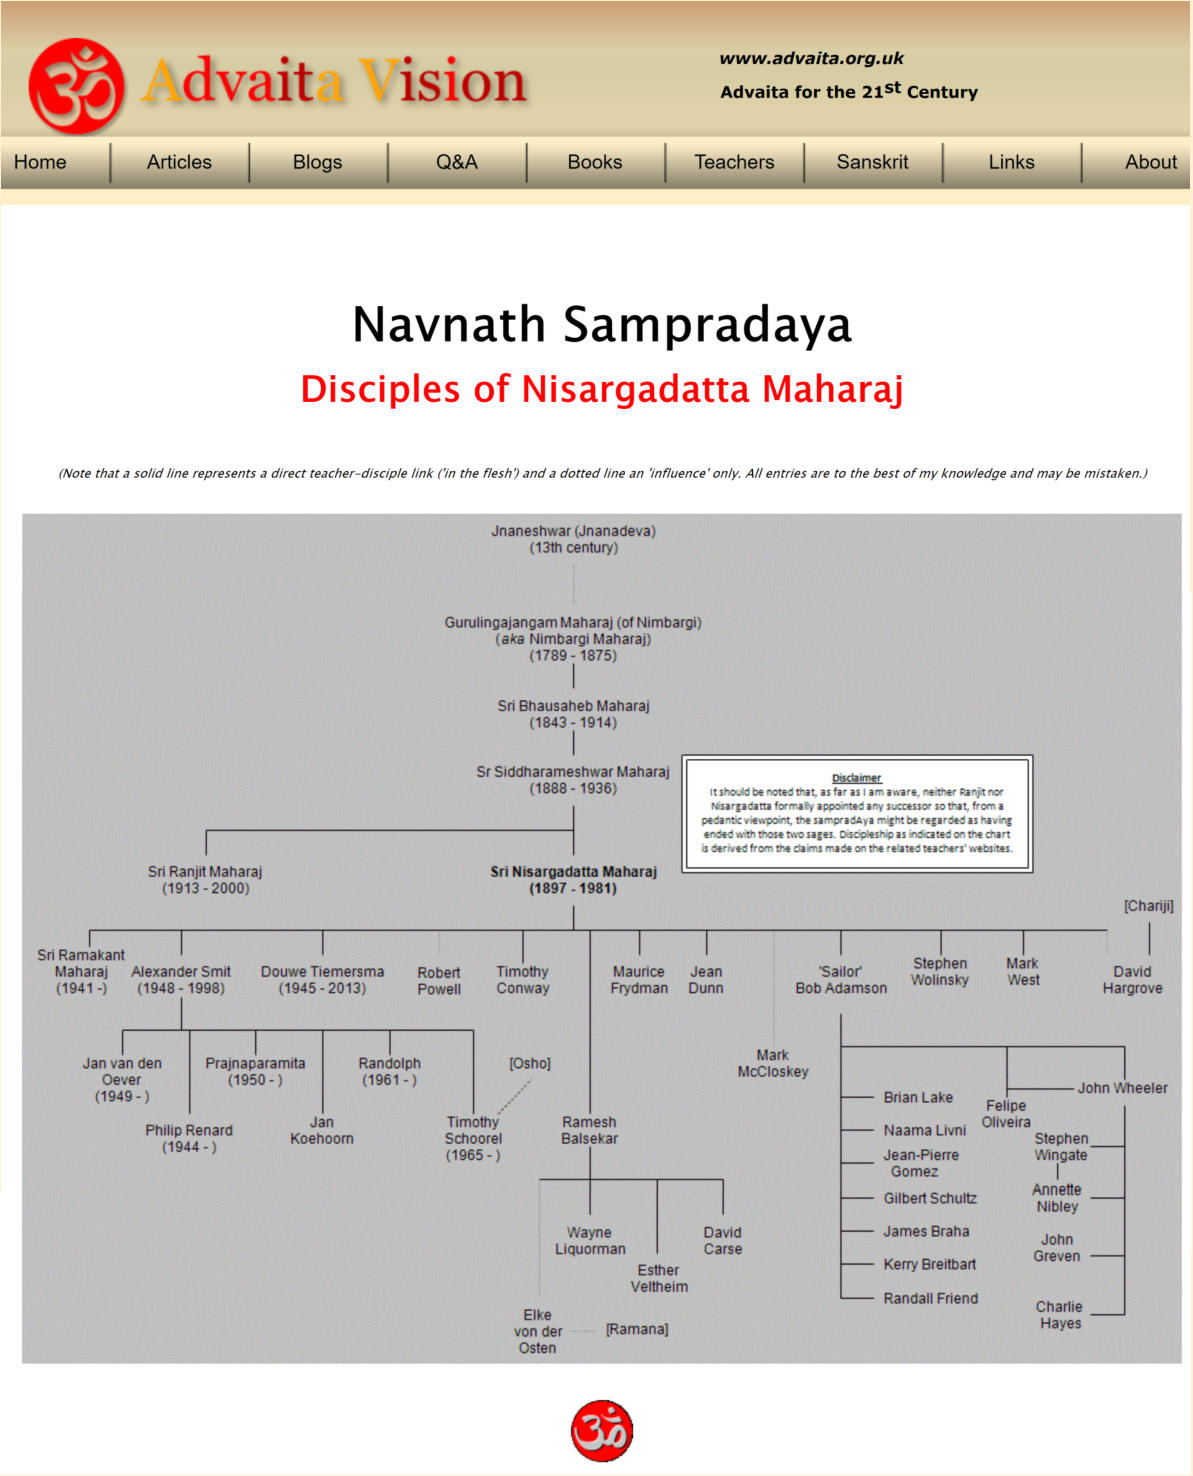 Advaita vision Navnath Sampradaya